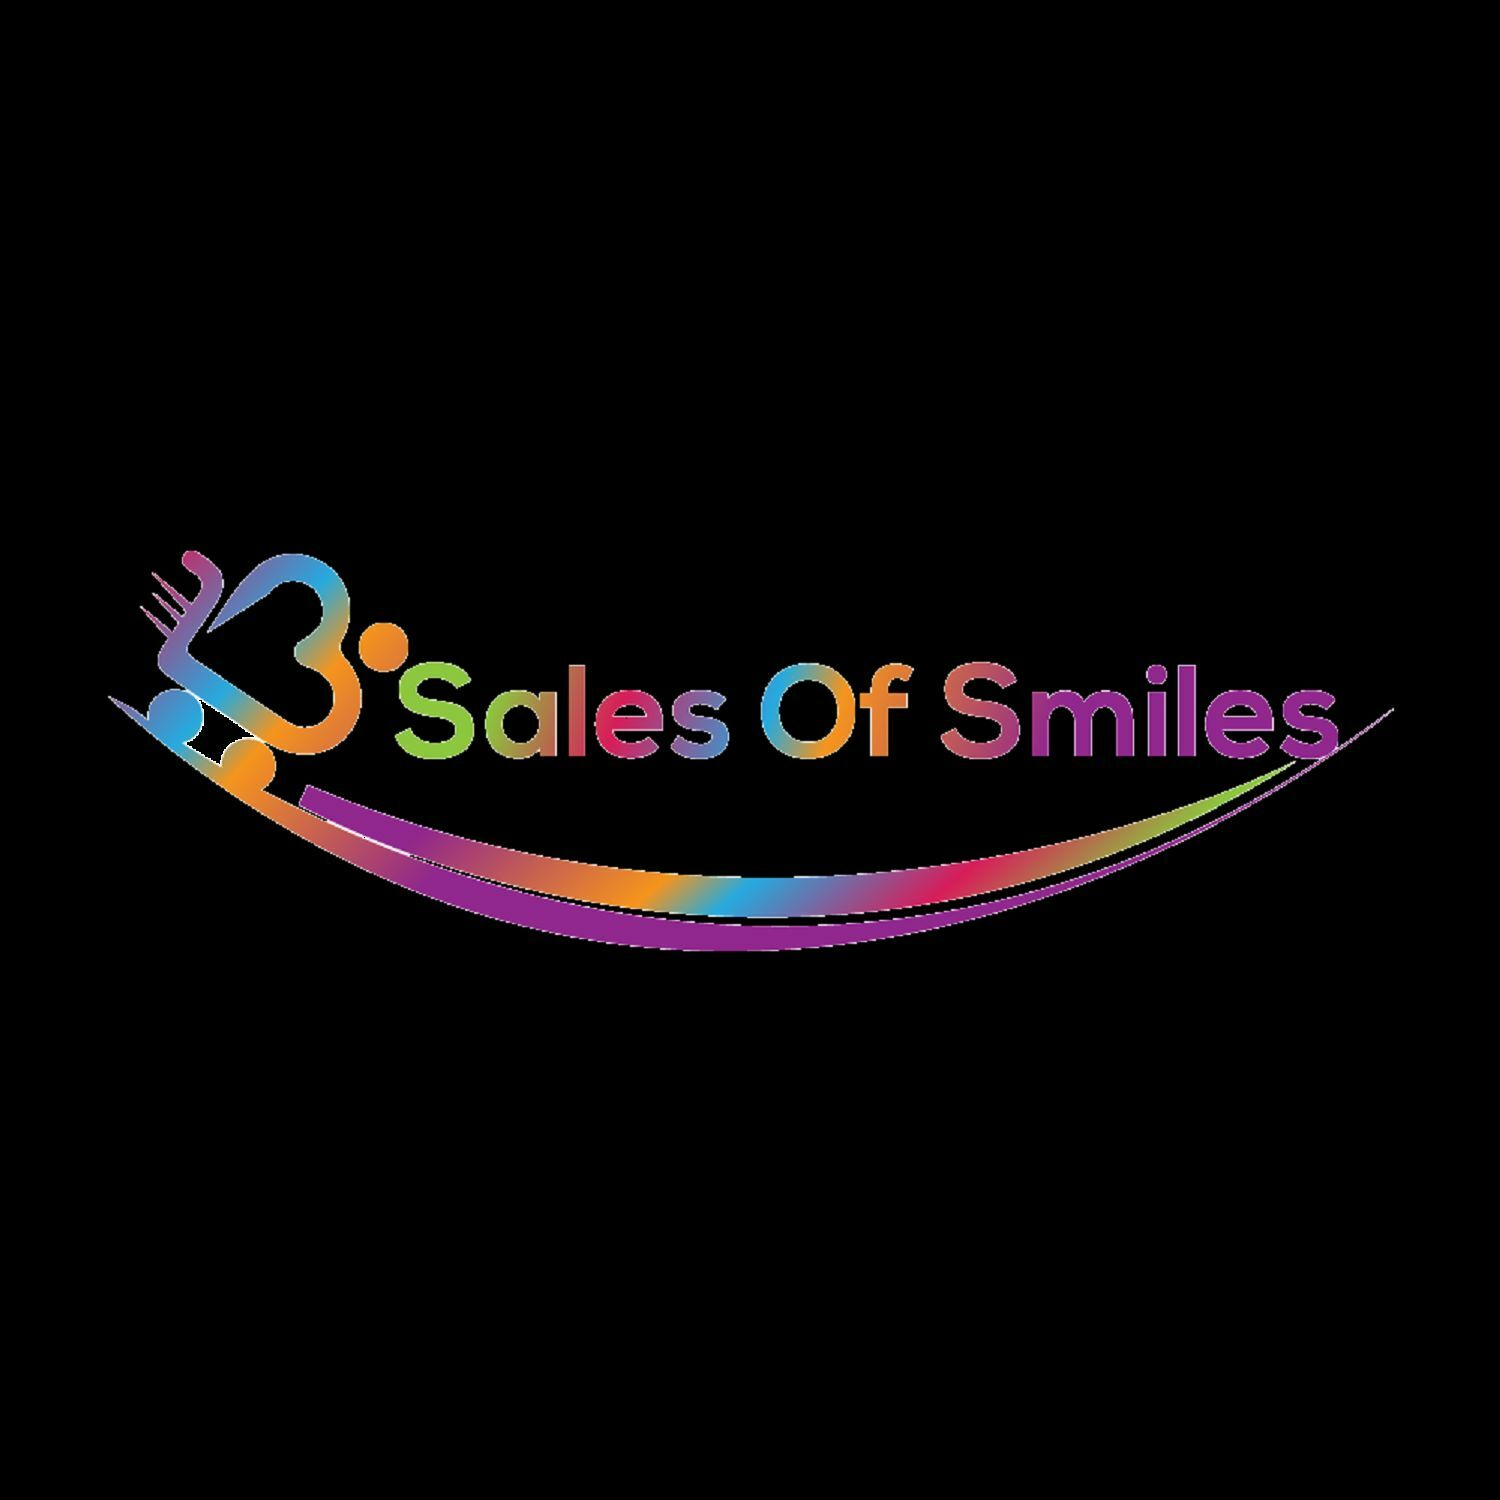 Sales of Smiles